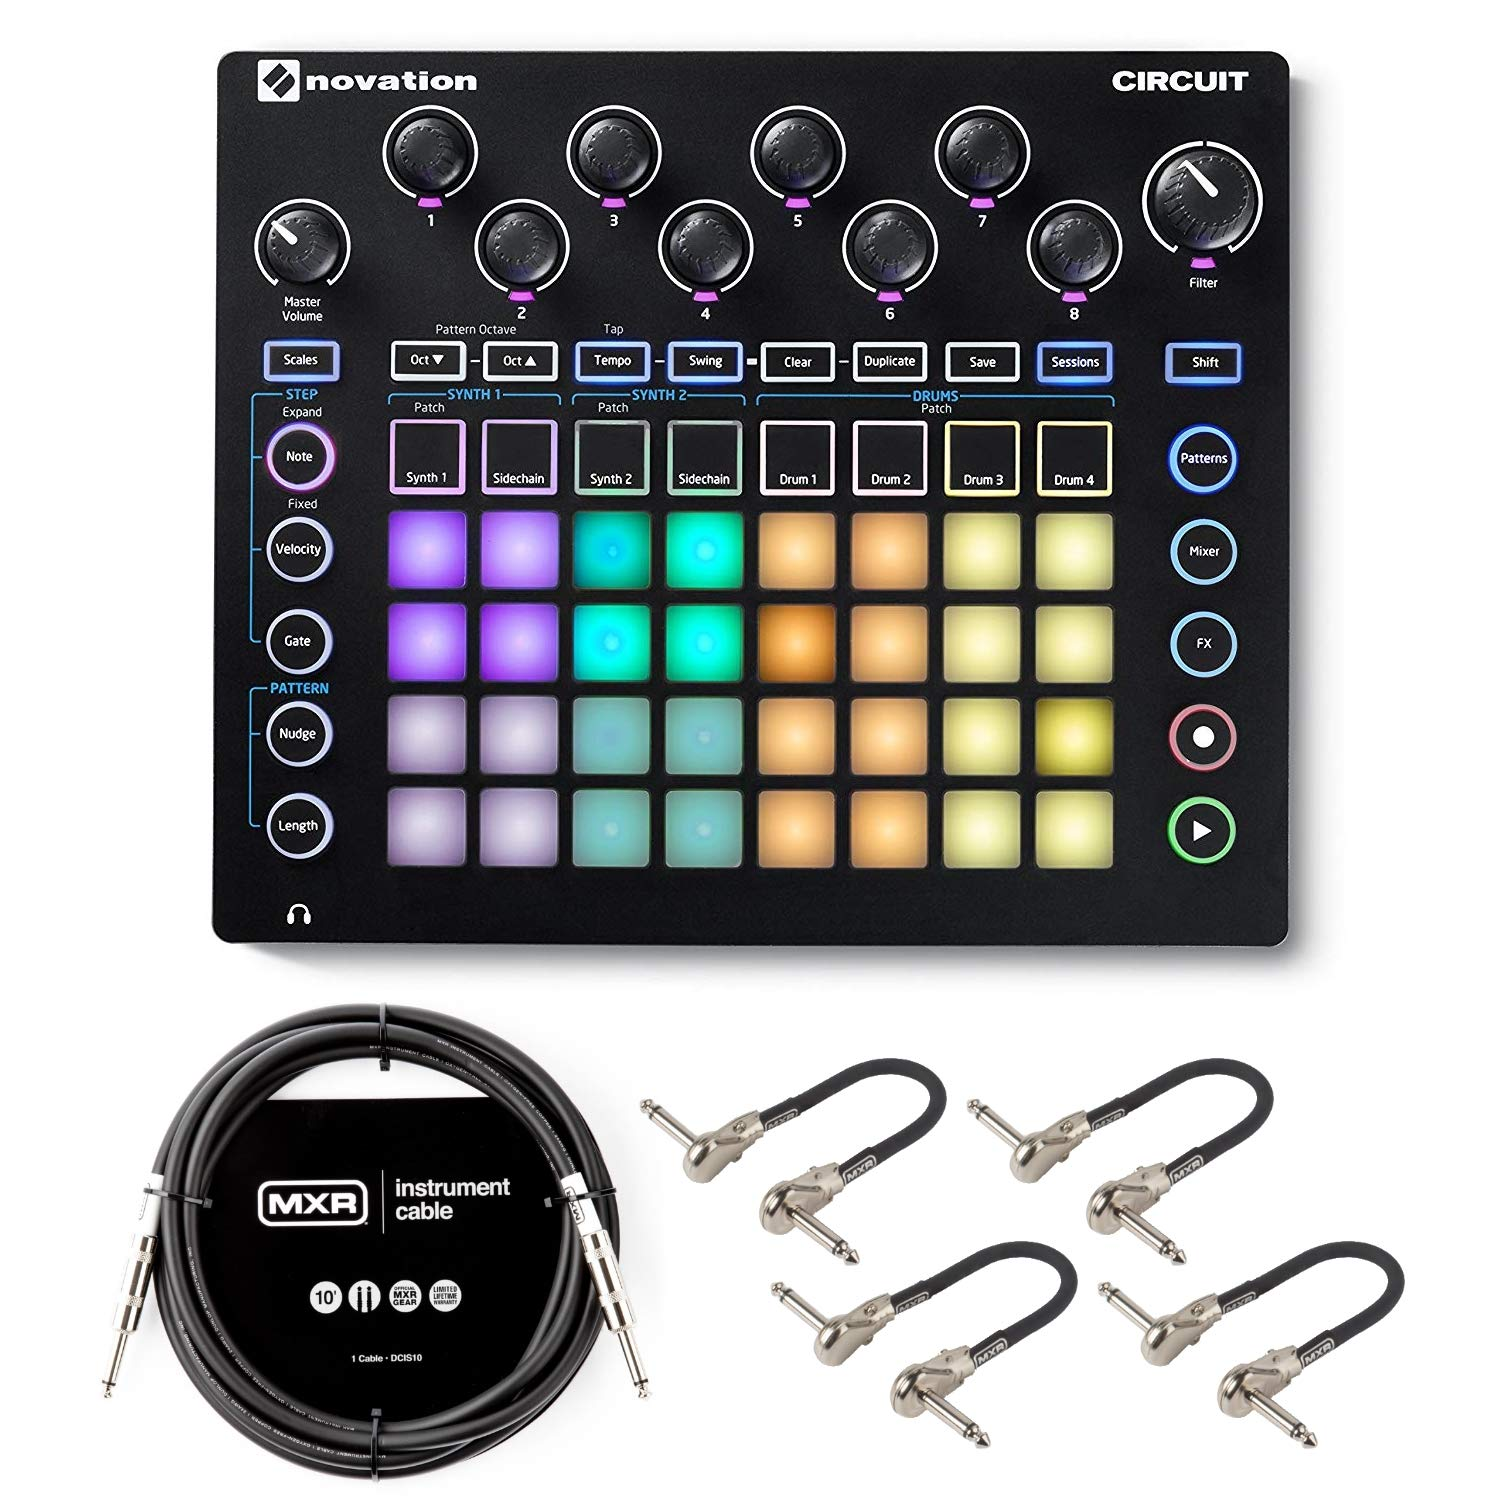 Novation Circuit Groovebox with Sample Import Bundle with 4 MXR Patch Cables and 10ft MXR Instrument Cable by Briskdrop (Image #1)